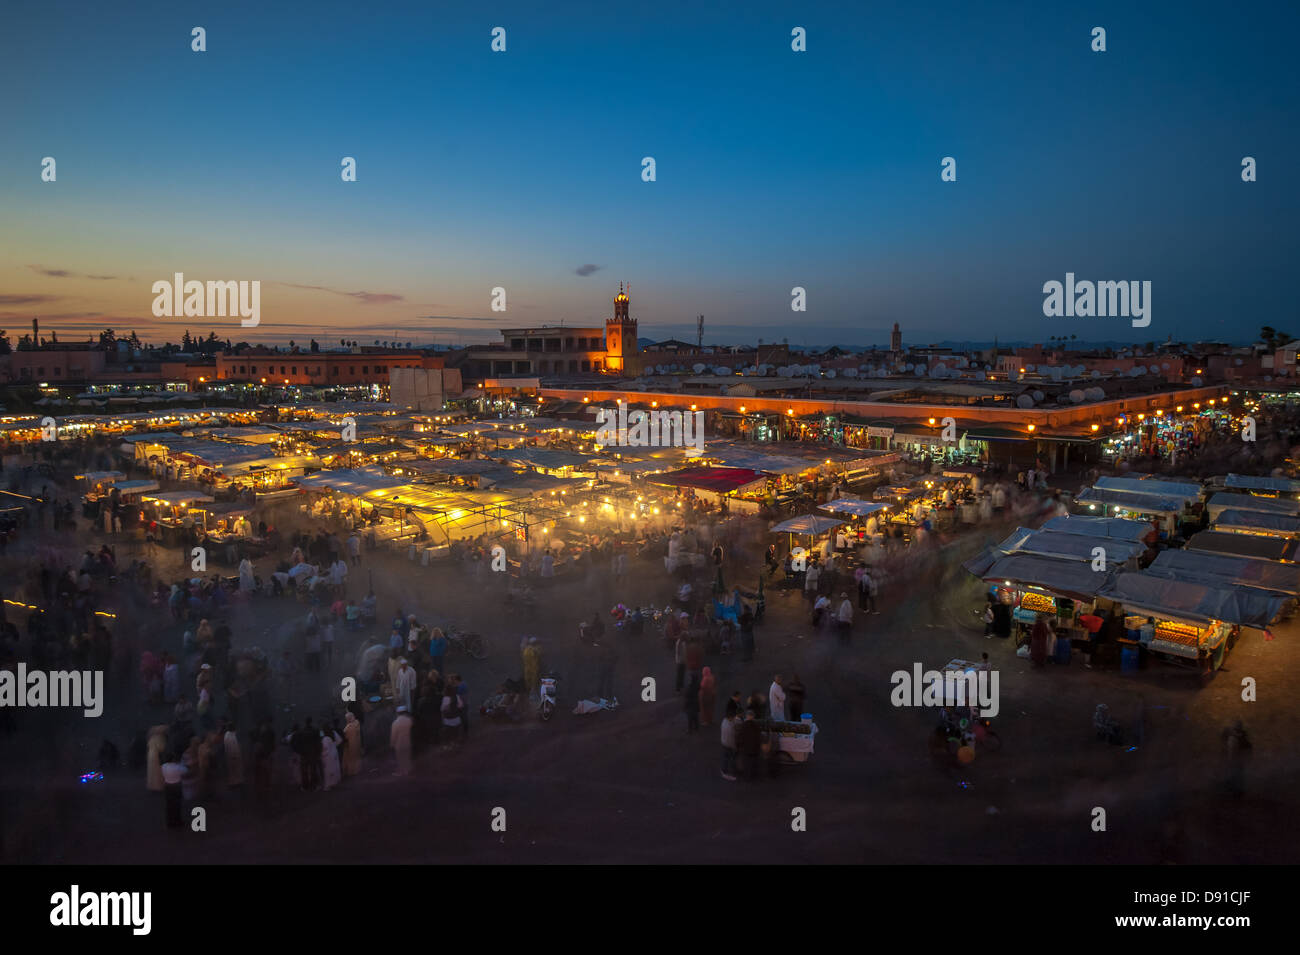 Jemaa el-Fnaa, square and market place in Marrakesh, Morocco - Stock Image